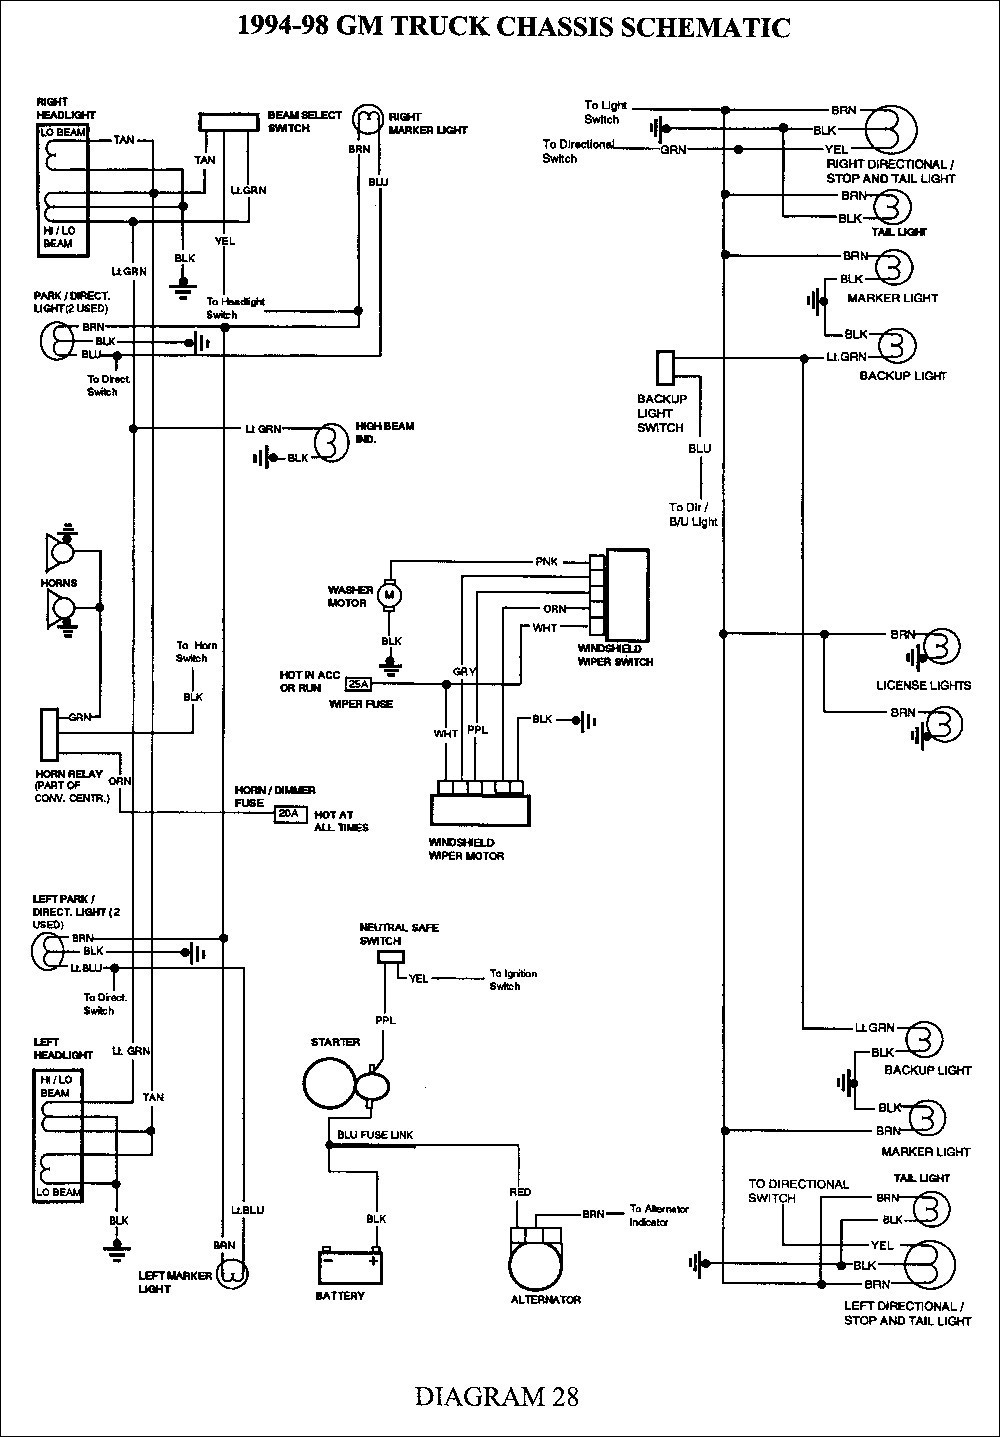 medium resolution of trailer wiring harness diagram 2001 chevy venture wiring diagram page 2000 chevy venture fuel pump wiring harness free download wiring